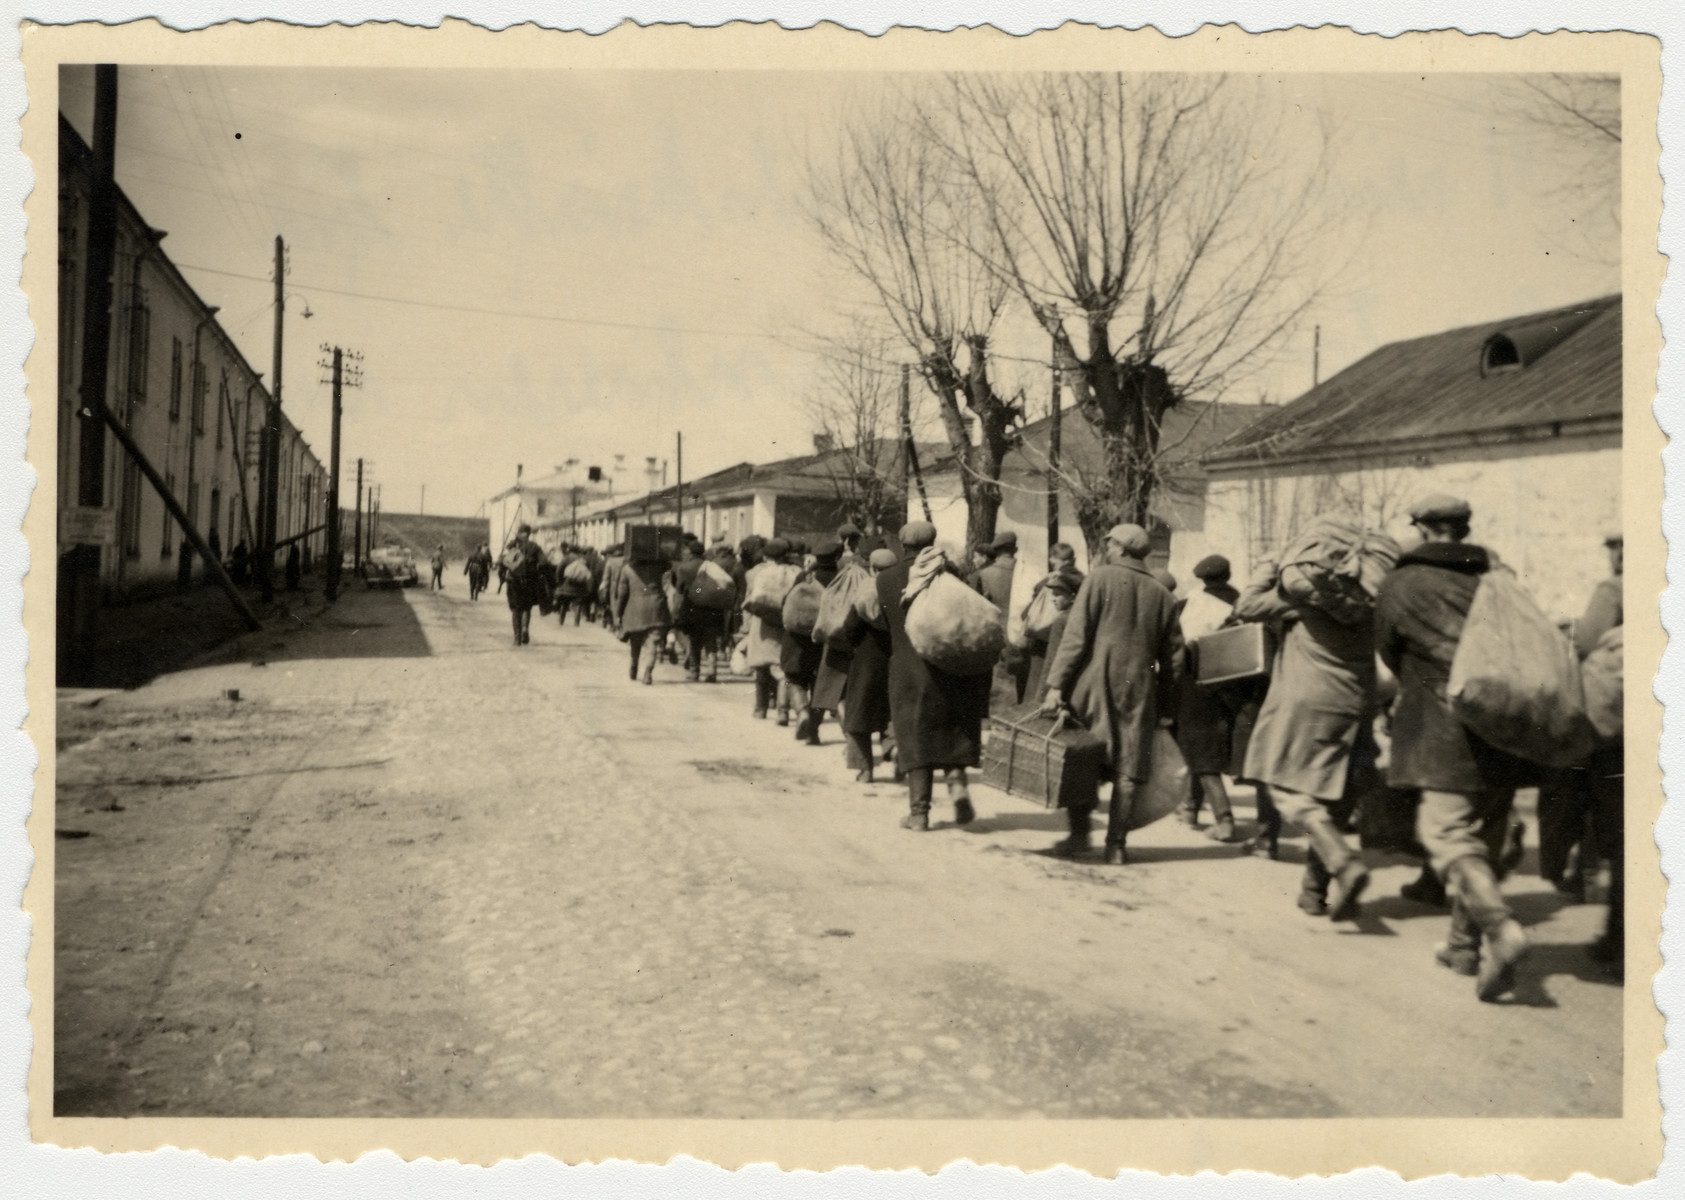 A group of people march down a road with their possessions (probably during either a deportation or relocation action).